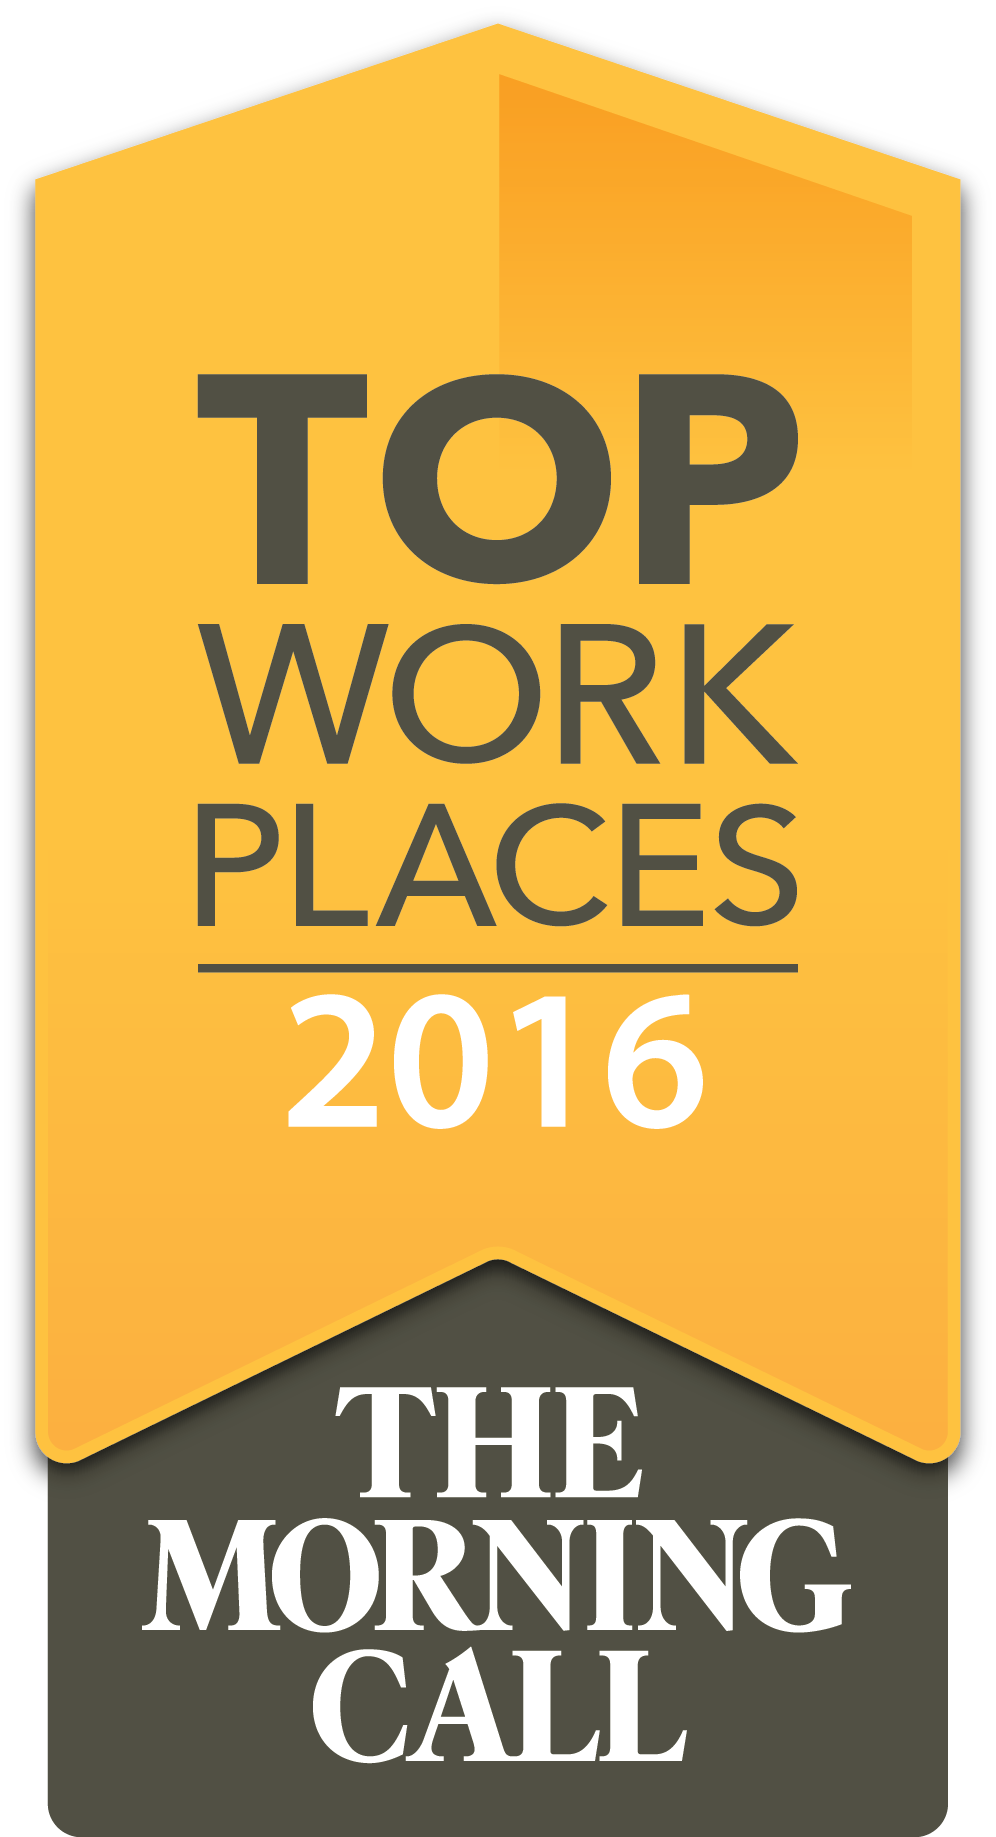 Trifecta Technologies was recognized as one of the Lehigh Valley's Top Work Places in 2016